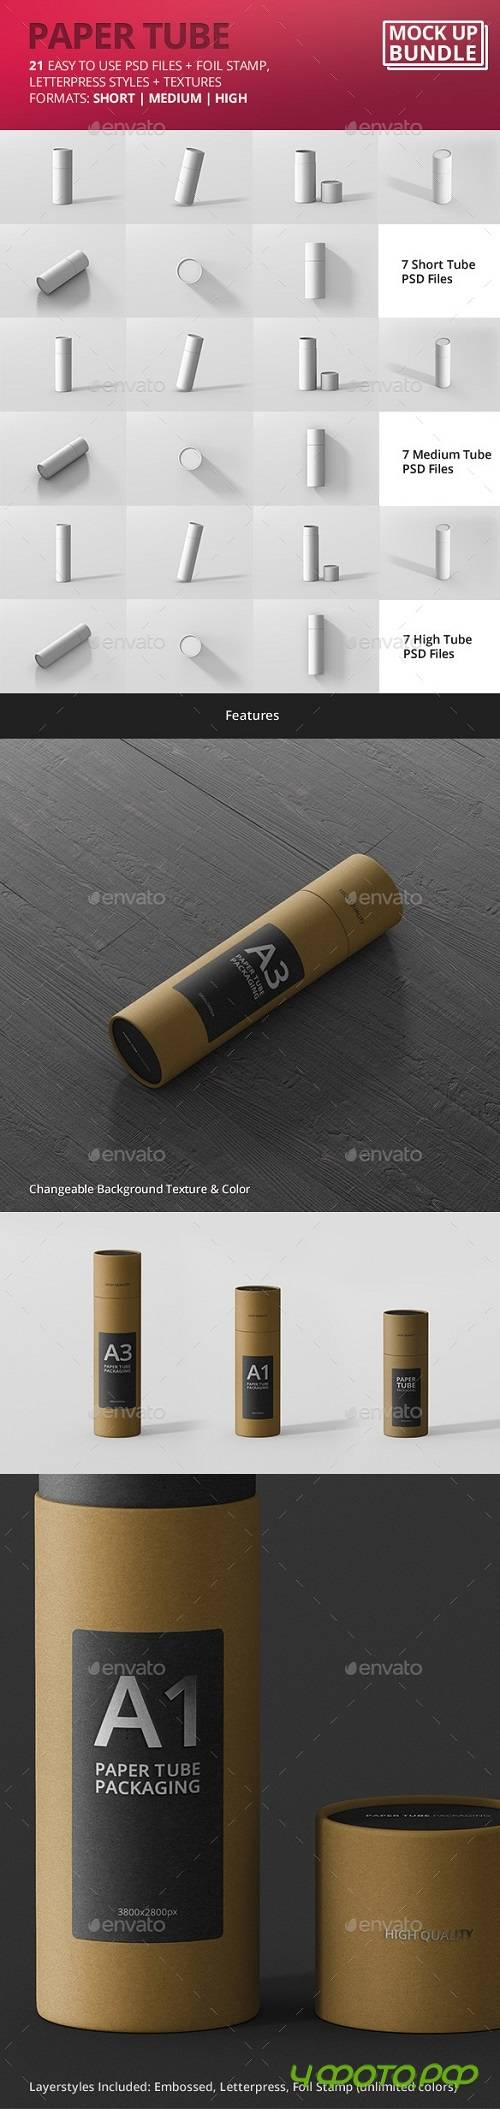 Slim Paper Tube Mockup Bundle - 19430984